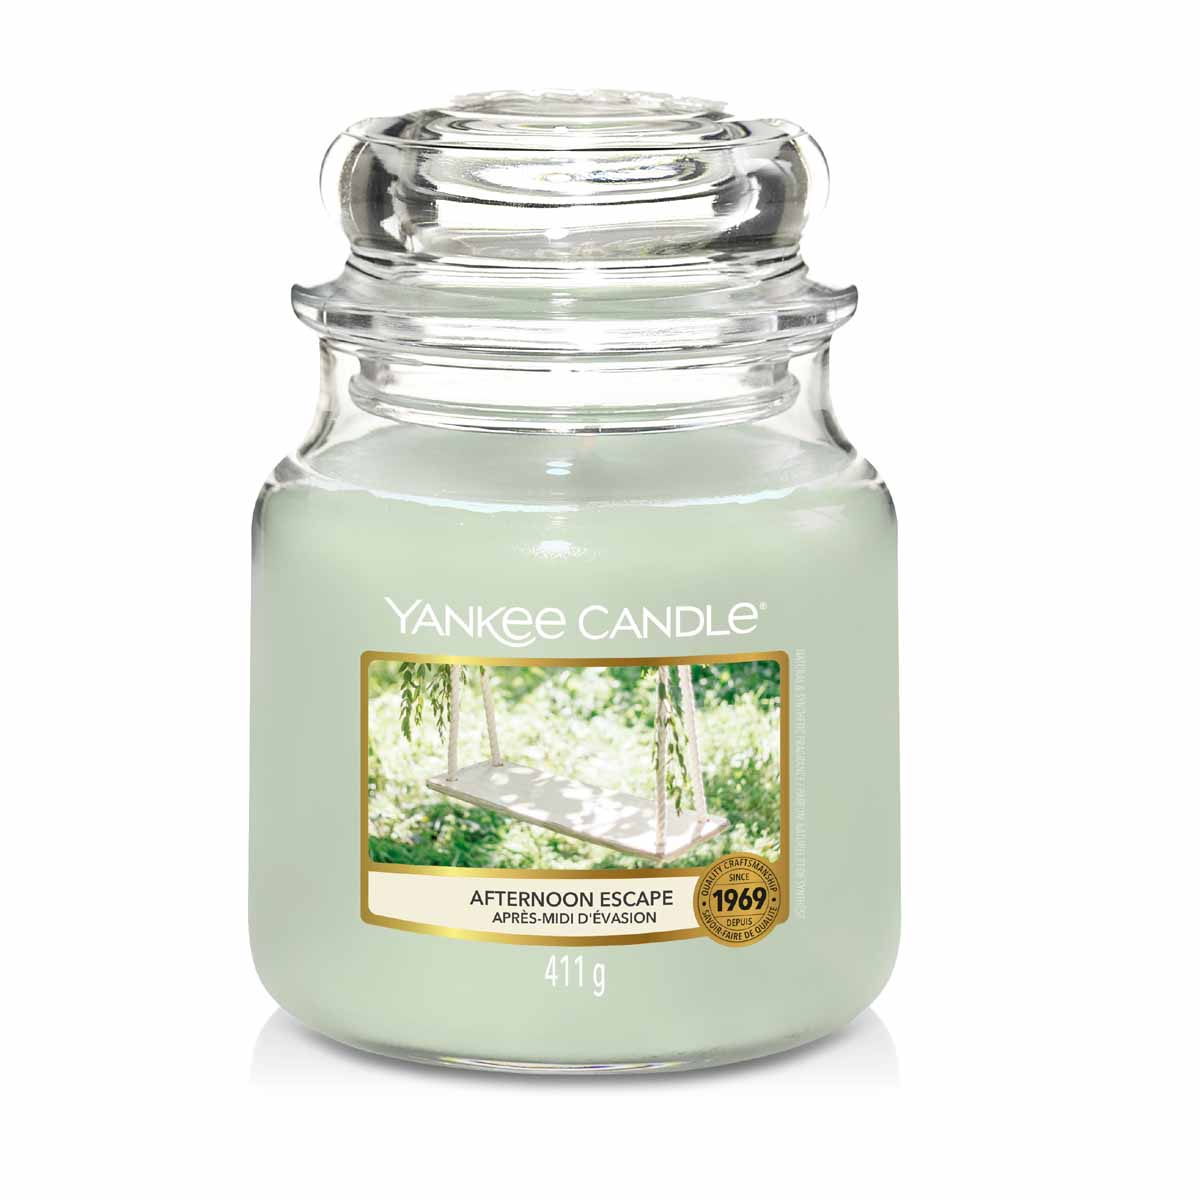 Yankee Candle Afternoon Escape Giara Media